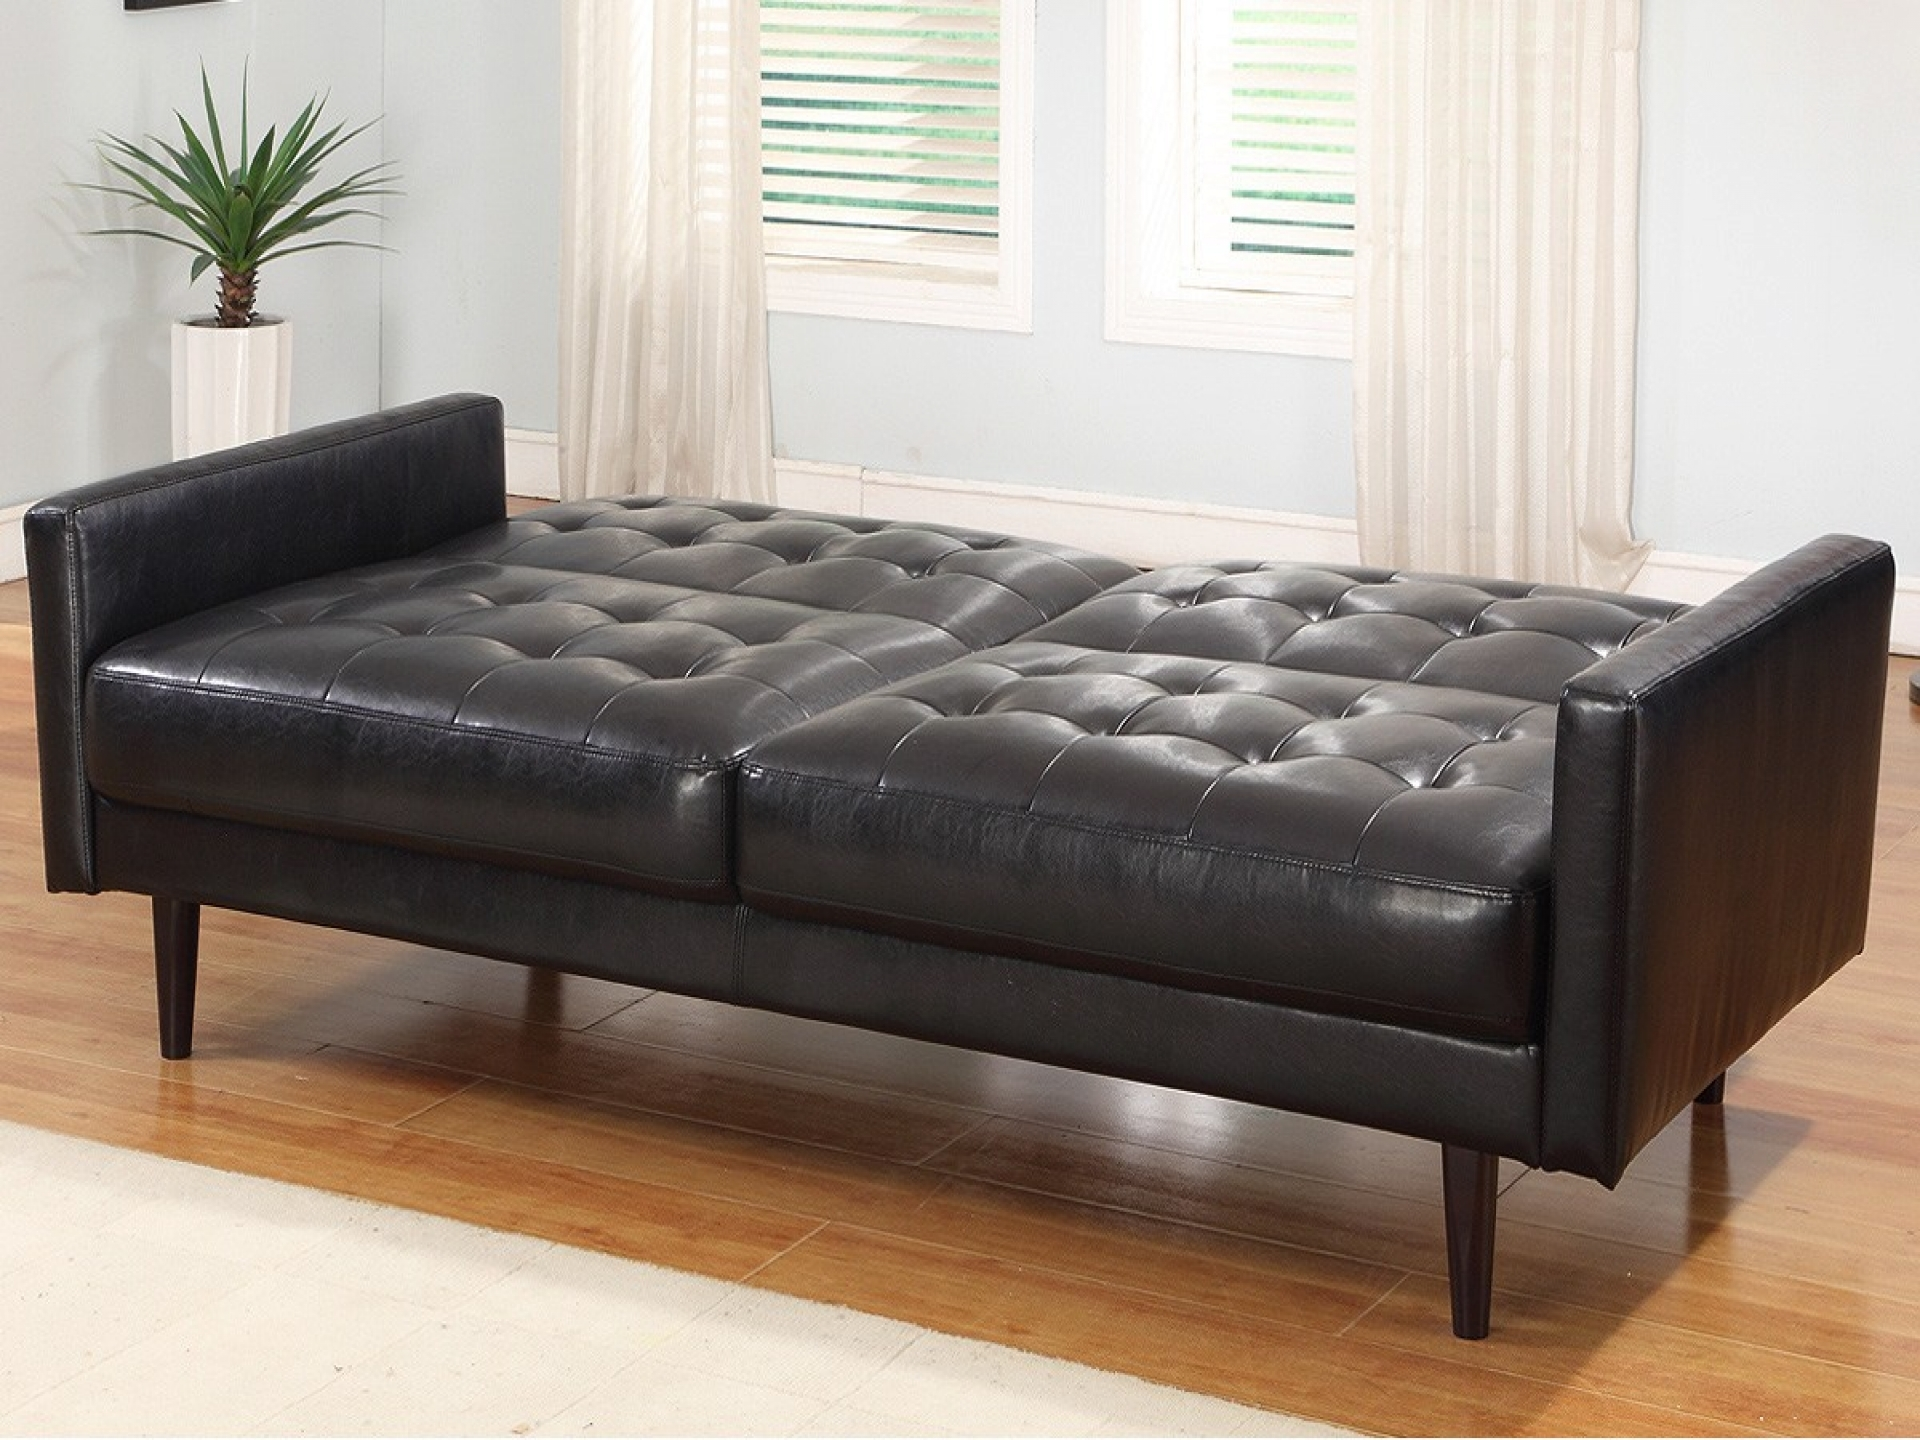 Sleeper Sofa Leather Modern Hereo Sofa With Cool Sleeper Sofas (Image 11 of 15)